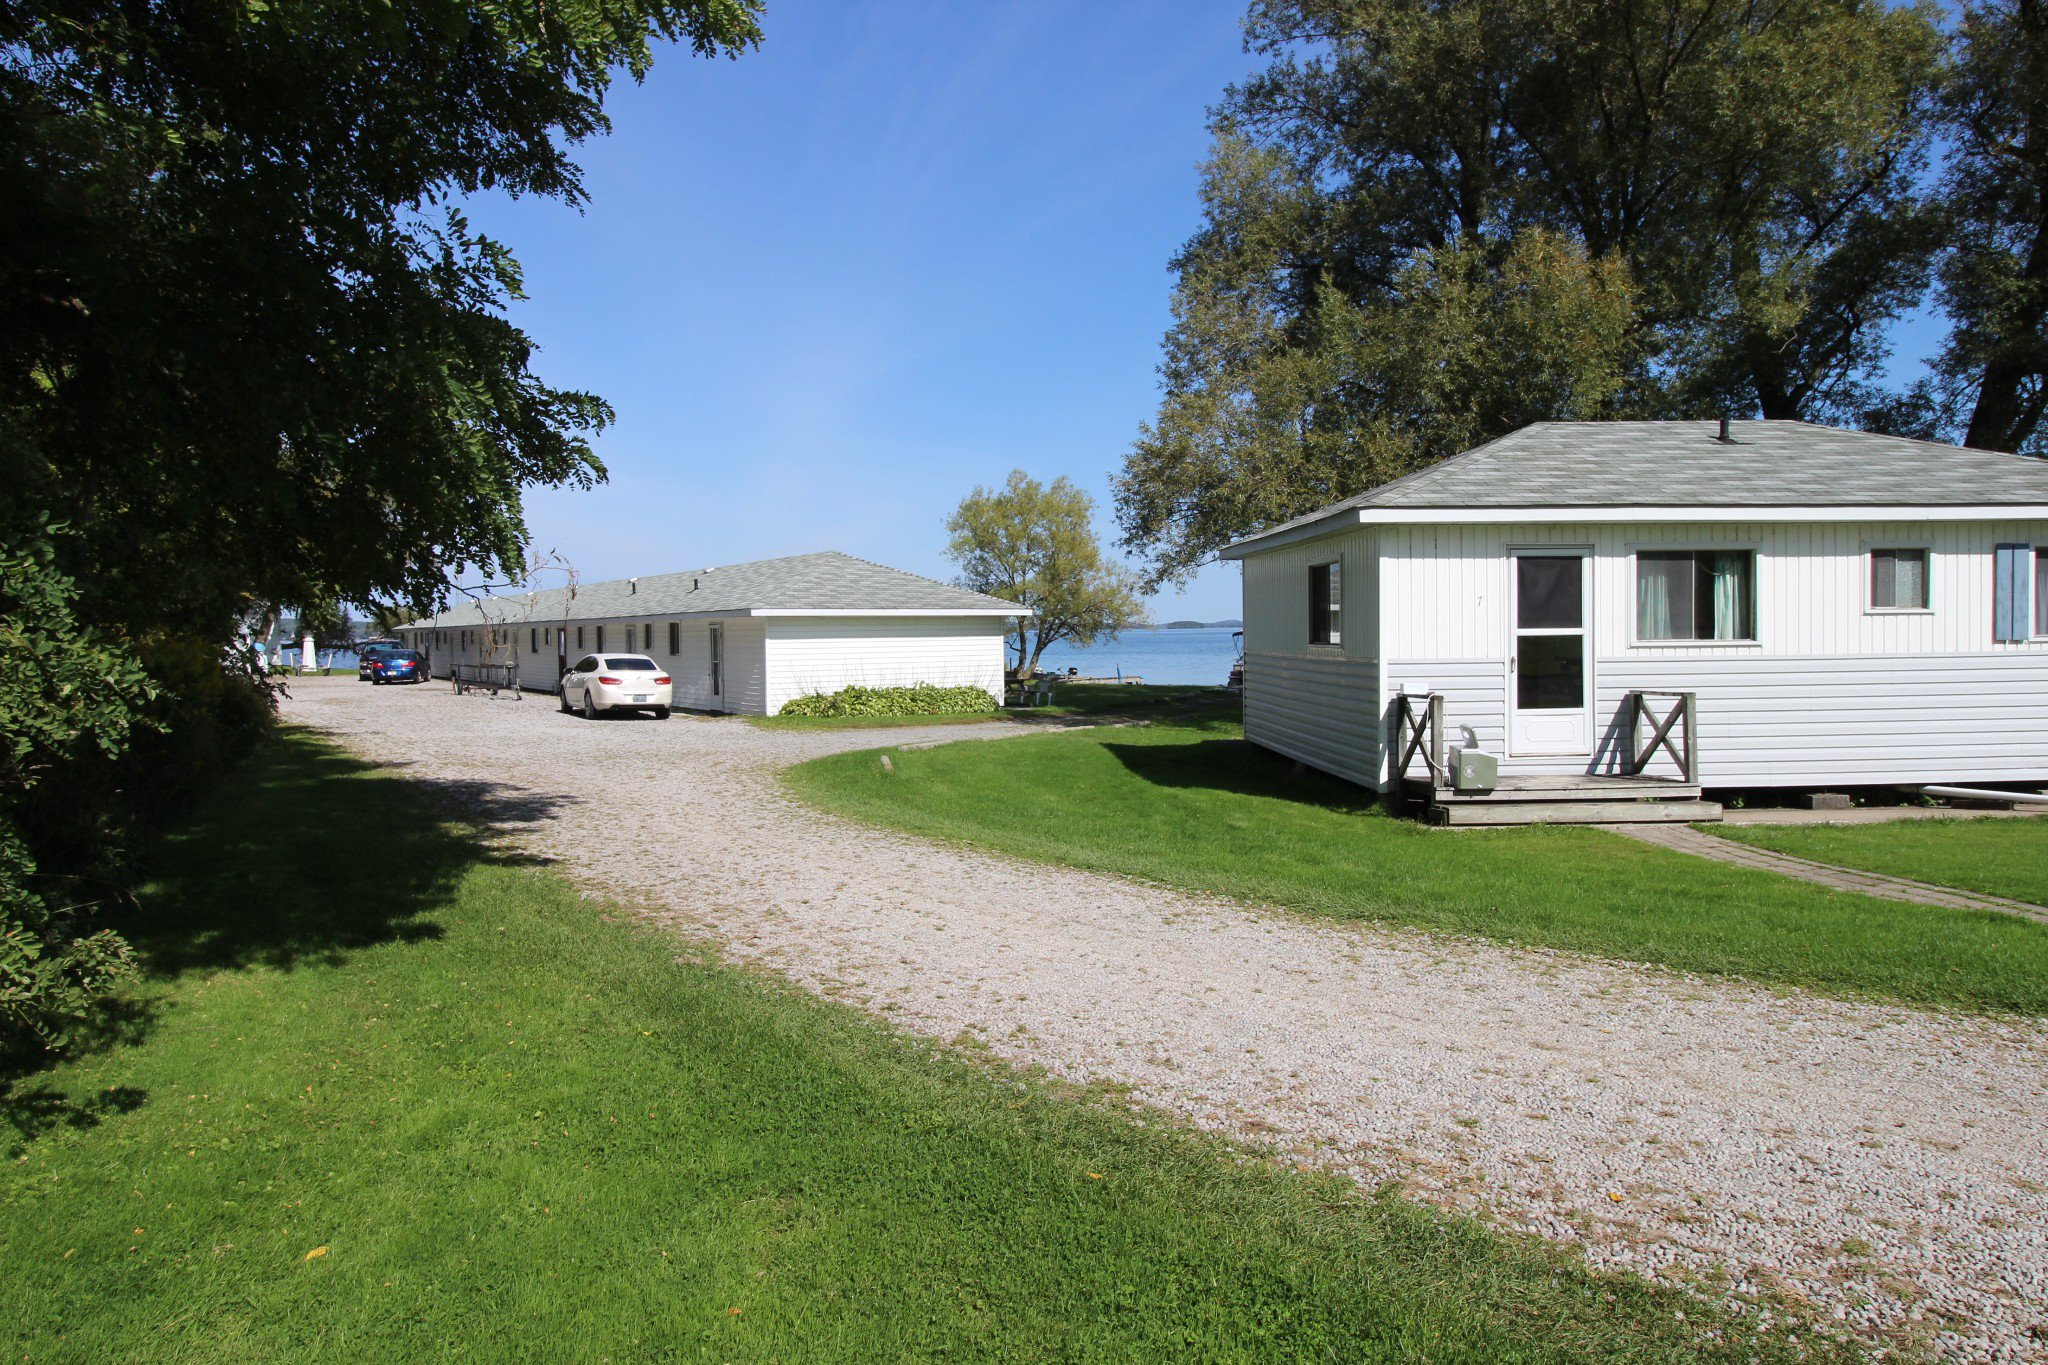 Photo 7: Photos: 6010 Rice Lake Scenic Drive in Harwood: Other for sale : MLS®# 223405